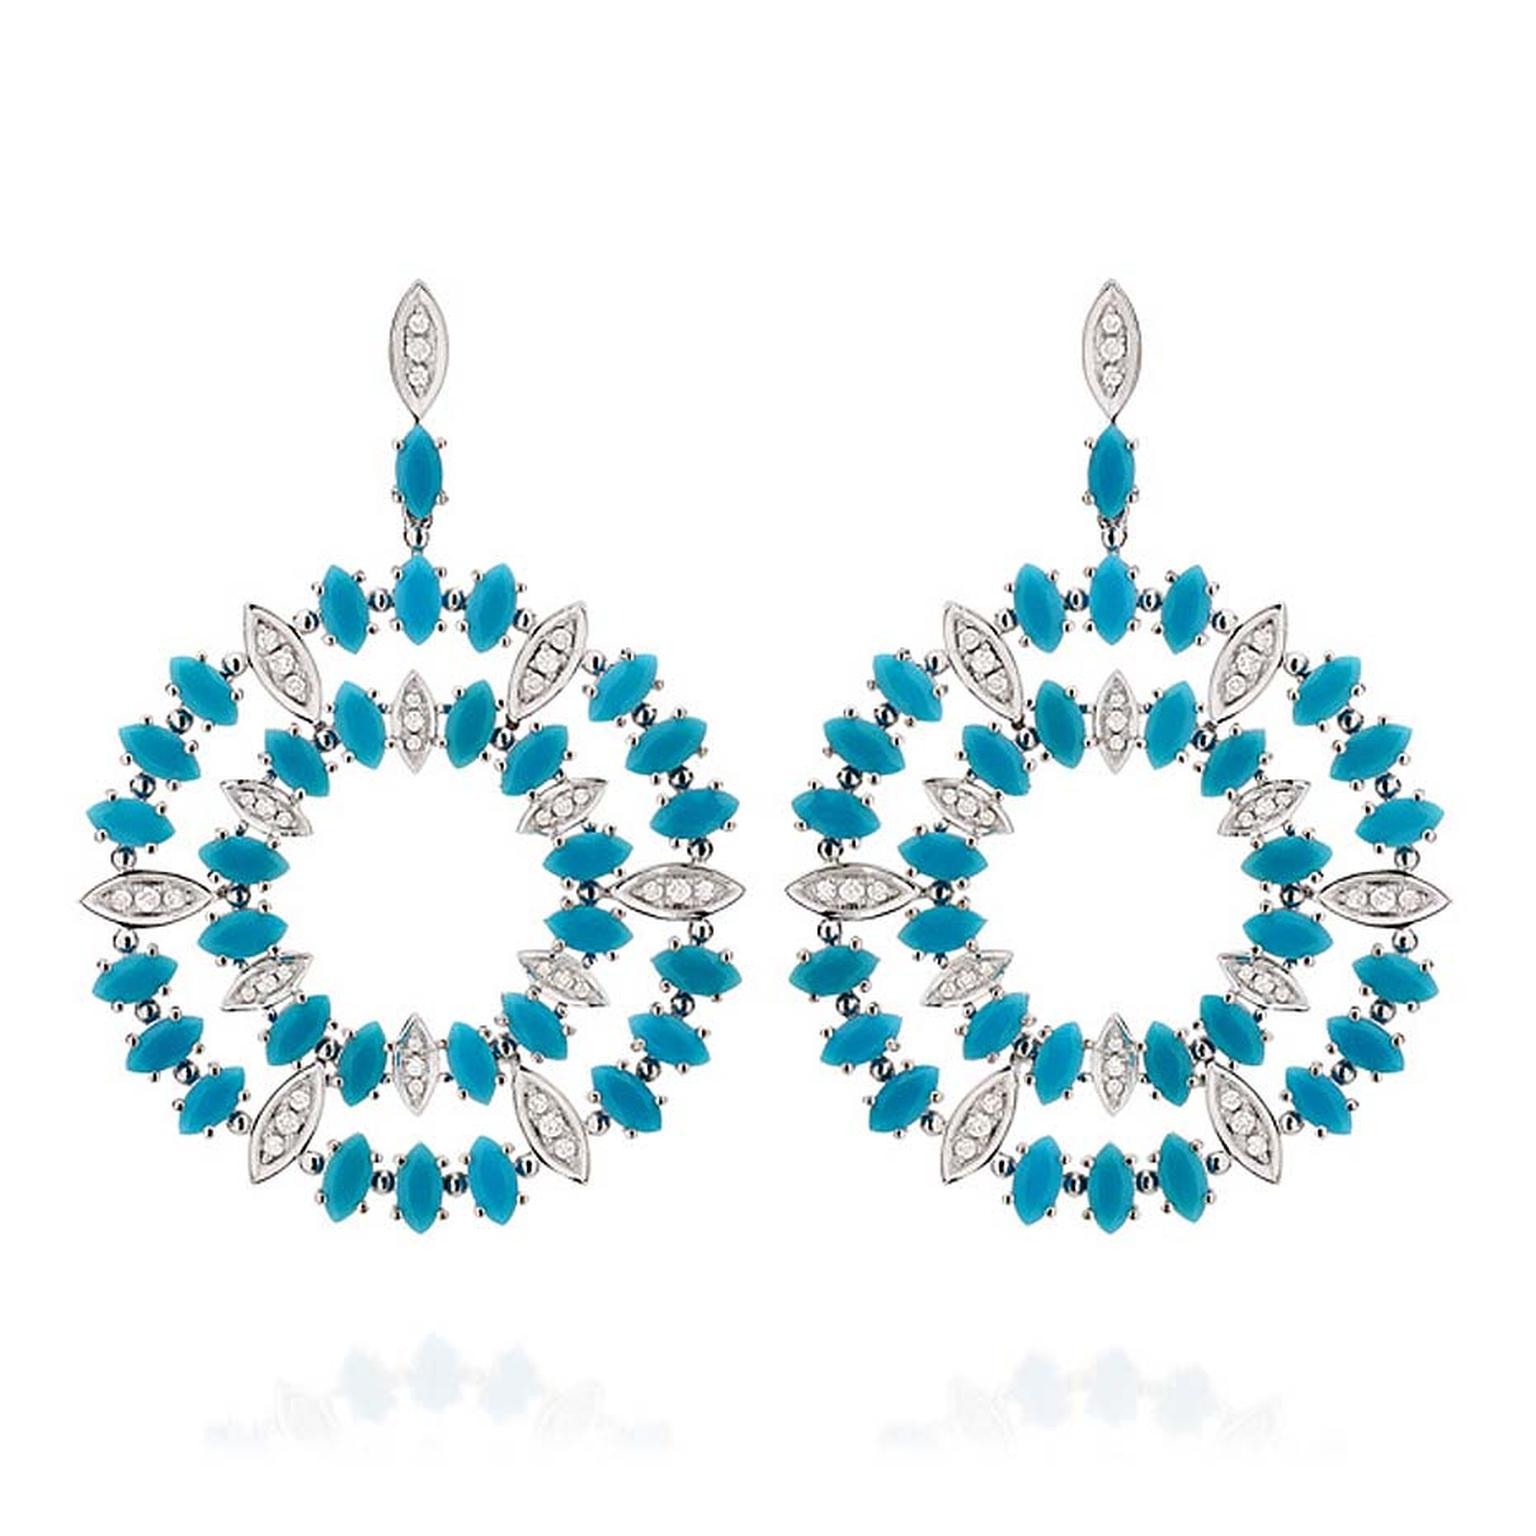 Brazilian jewellery designer Carla Amorim's São Paulo Aquário turquoise and diamond hoop earrings featuring turquoise drops interspersed by diamond-set white gold drops. $11,200.